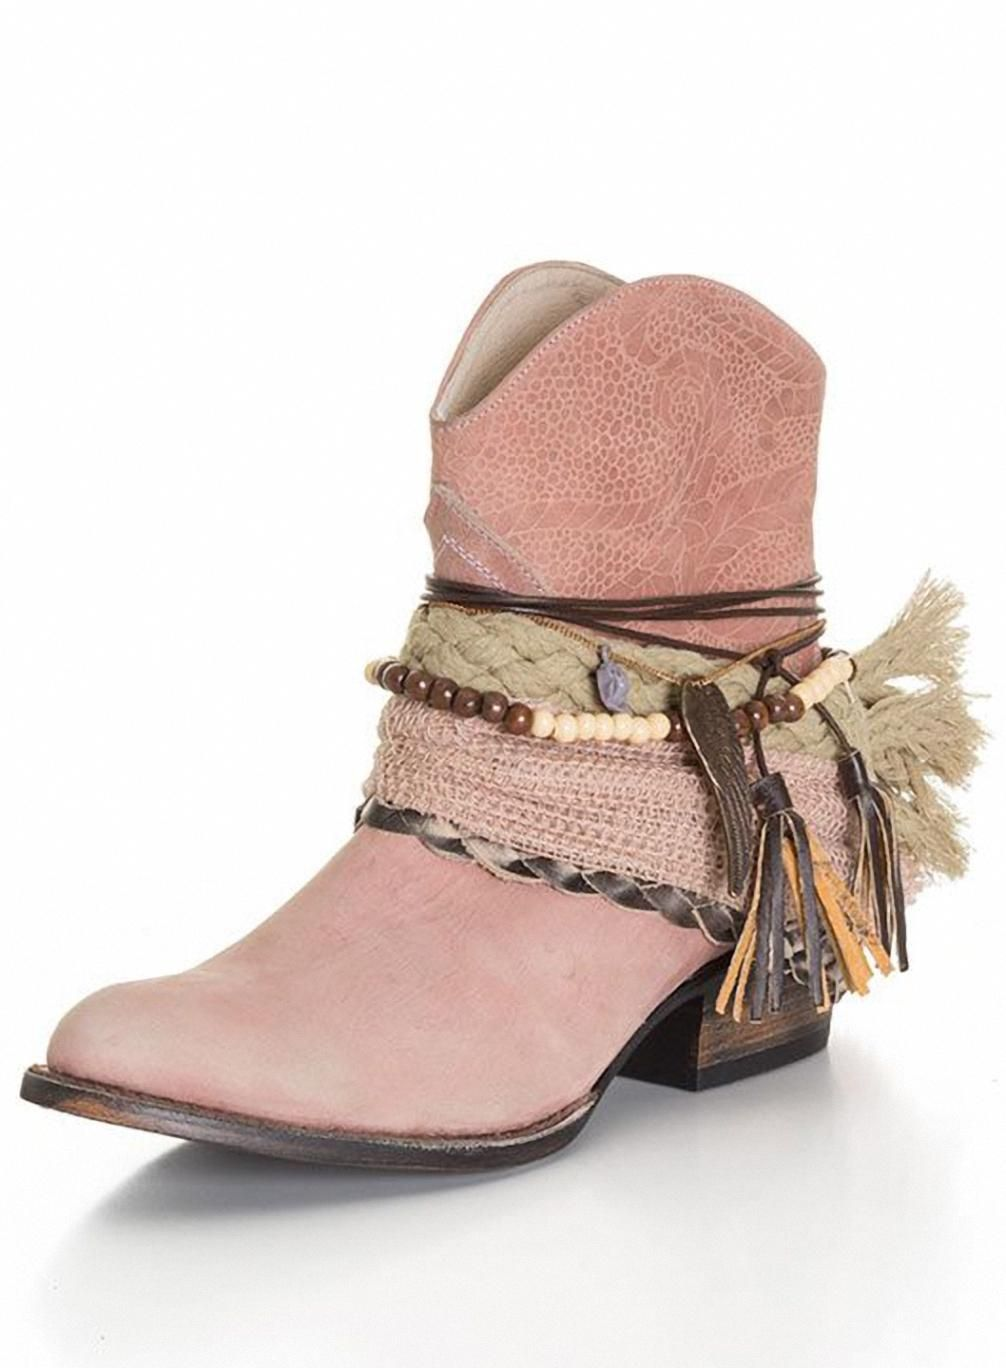 These Boots Were Made For Strutting: These Boots Were Made For Walking And That's Just What